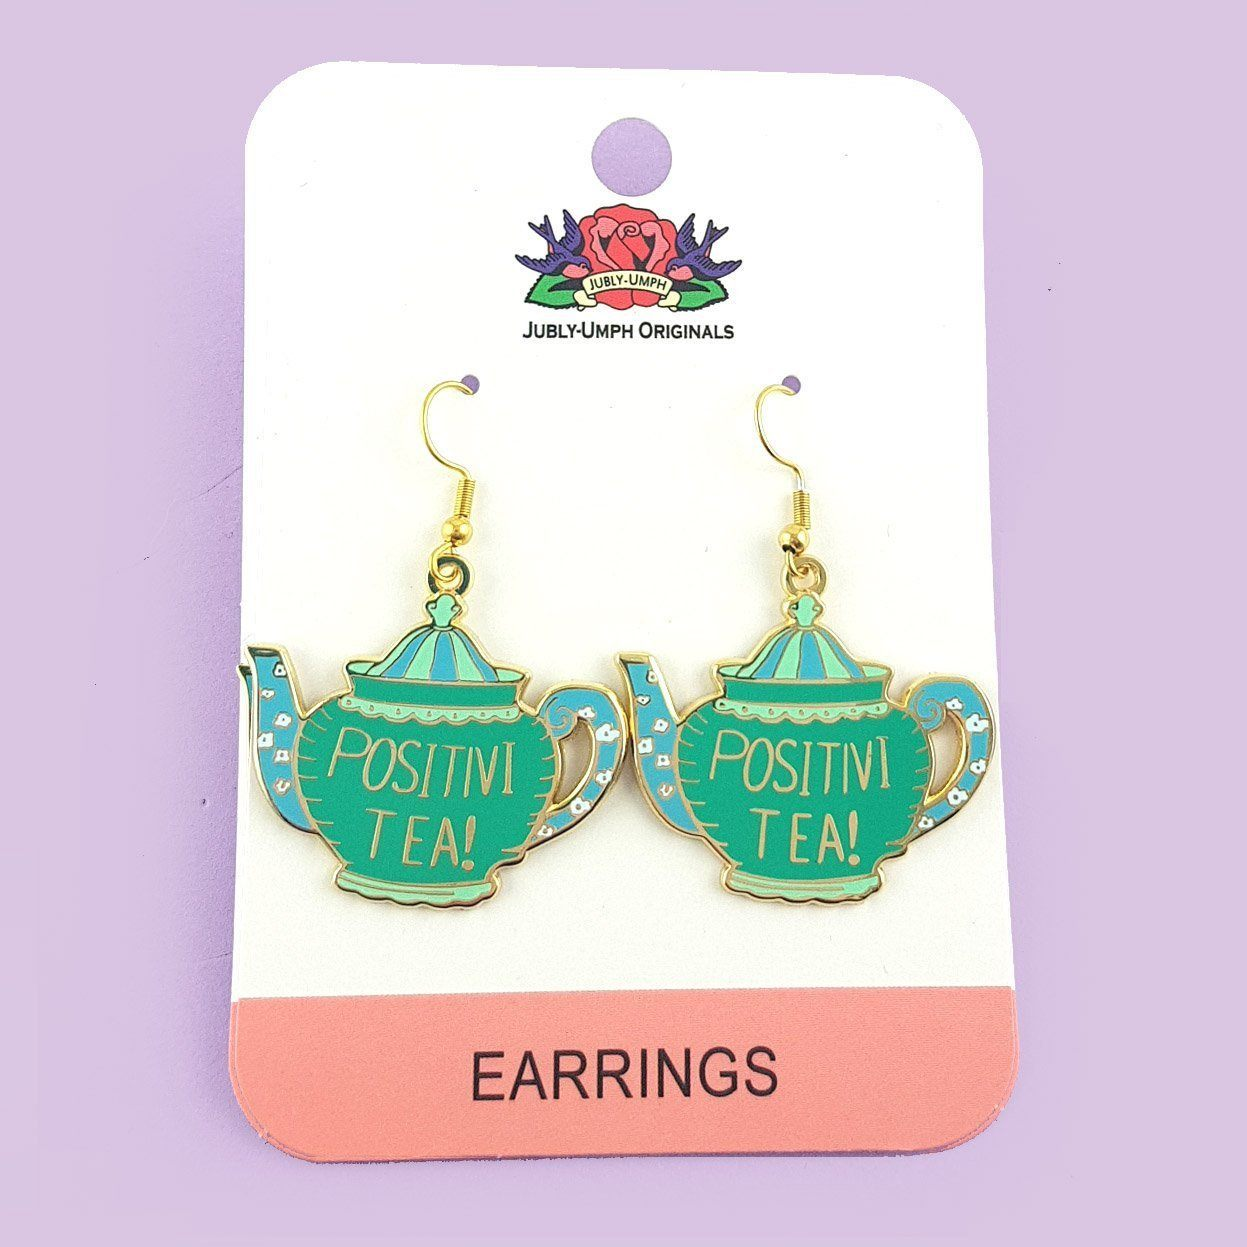 Positivi-Tea-Pot Earrings